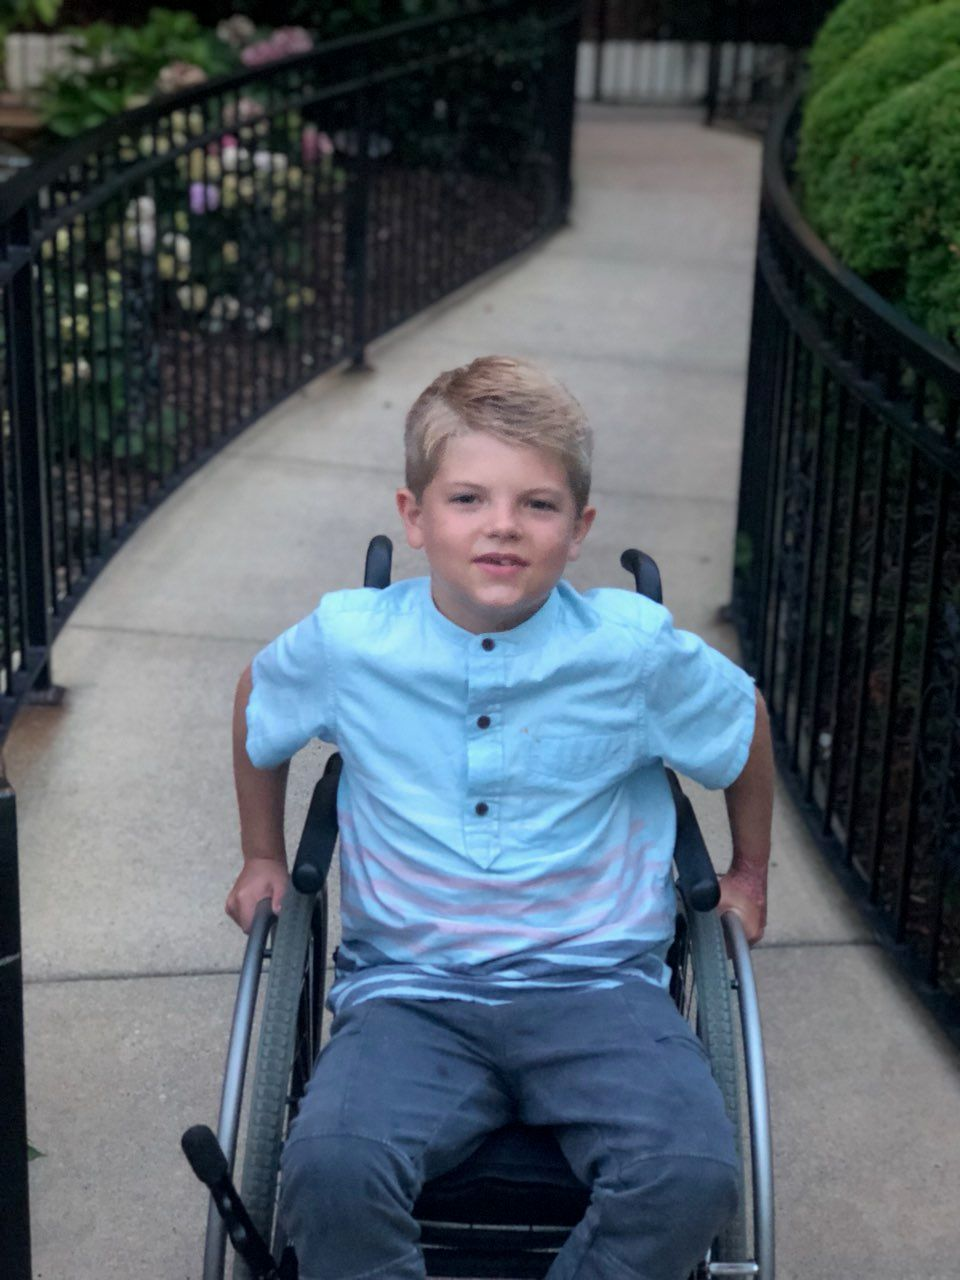 Our 9 year old son has been living with a debilitating mysterous skin disorder since birth. He was diagnosed with K.I.D syndrome in 2018.  image